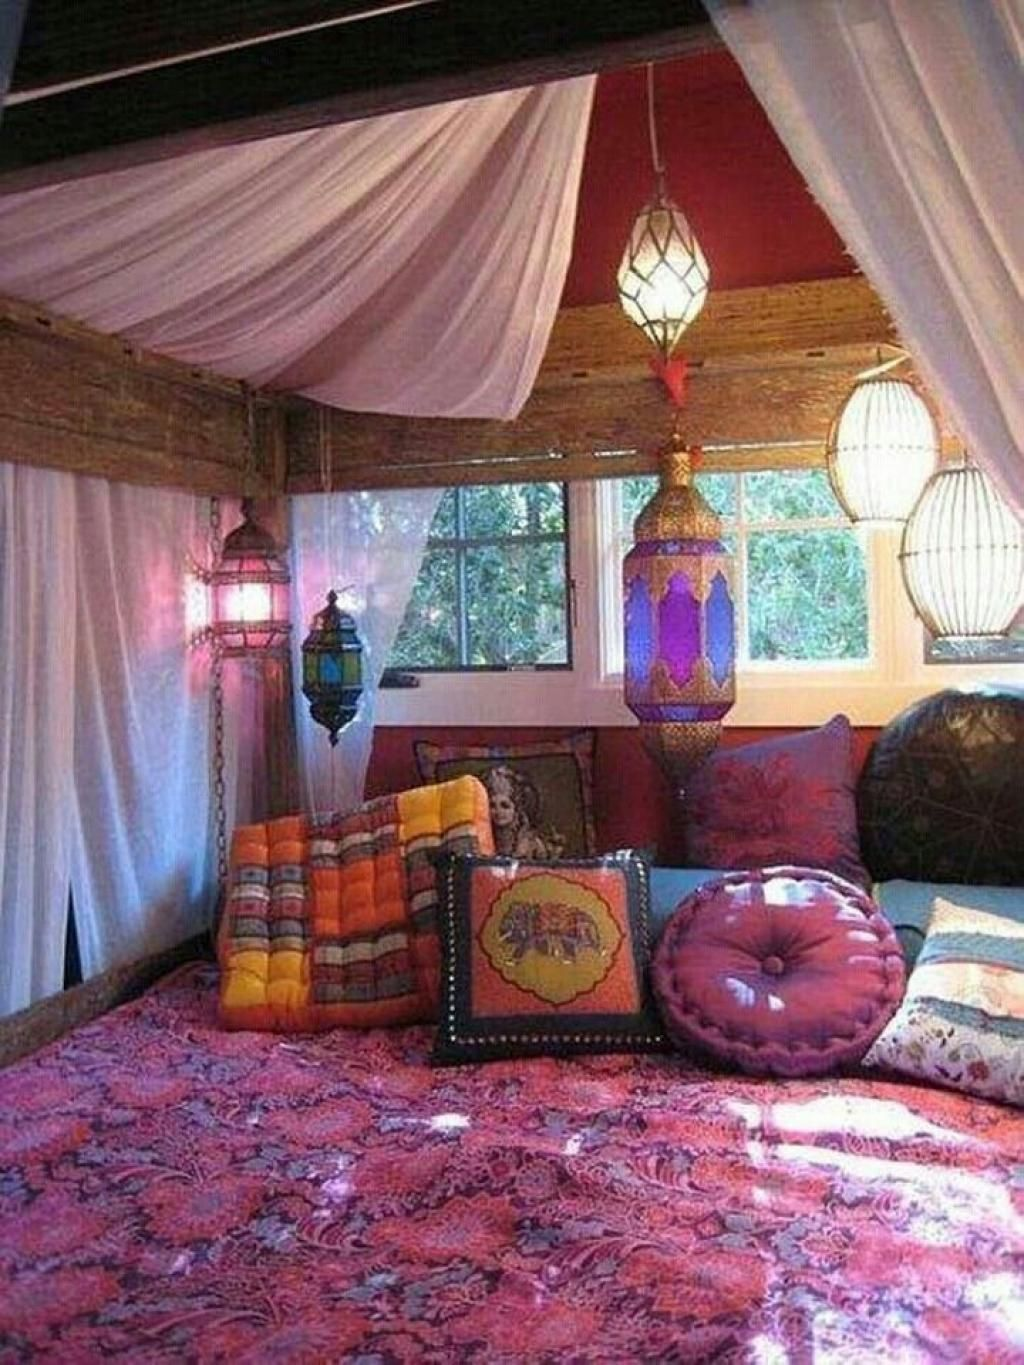 Clasic romantic interior bedroom design ideas with lighting design and with hanging lamp - Meditation room decorating ideas ...